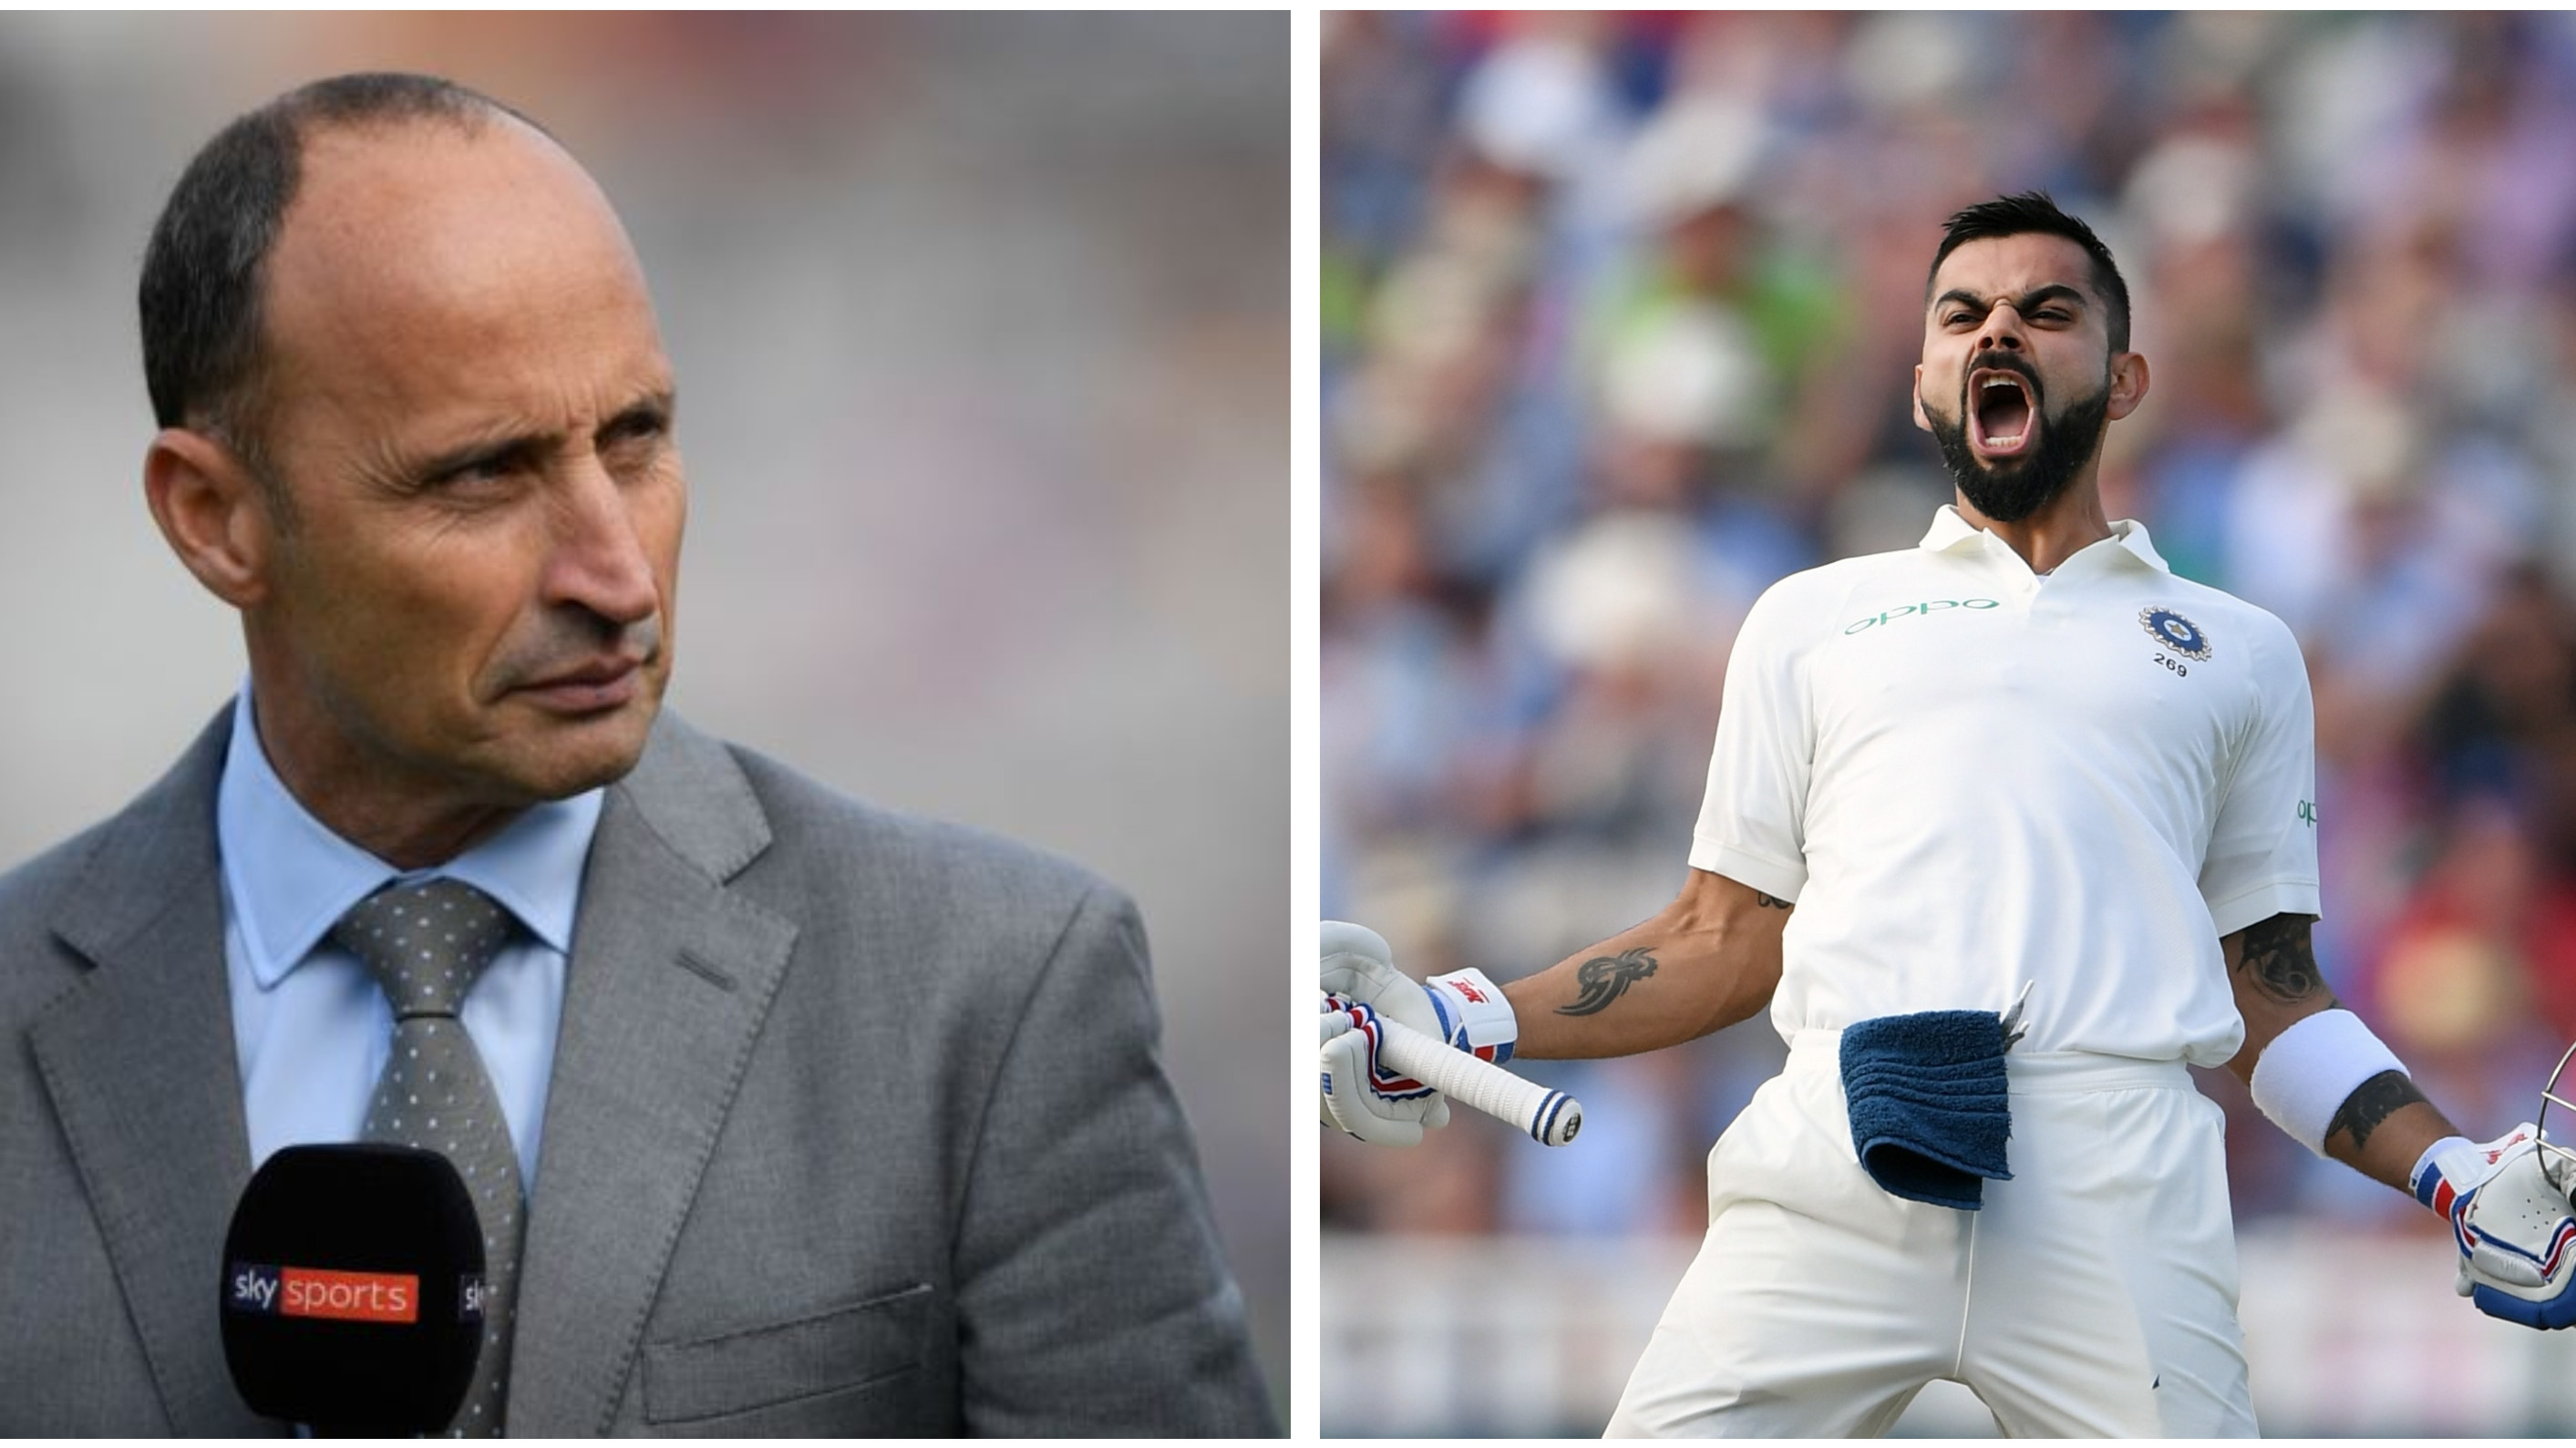 ENG vs IND 2018: Virat Kohli should take responsibility as captain for India's loss, says Nasser Hussain